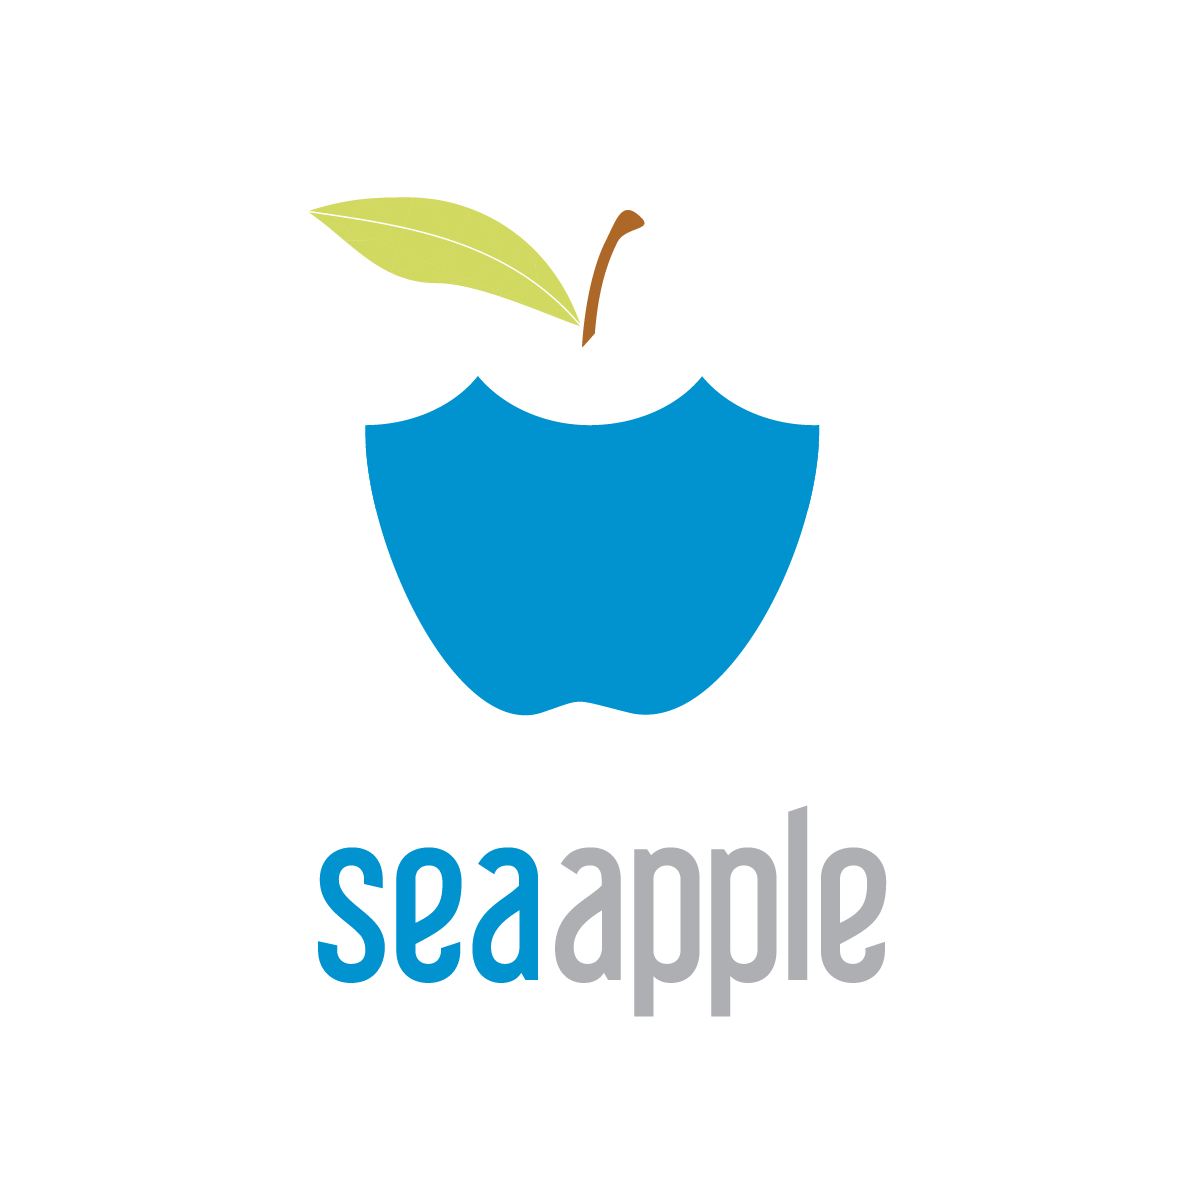 Logo Design by whitneyholland - Entry No. 87 in the Logo Design Contest Sea Apple logo.